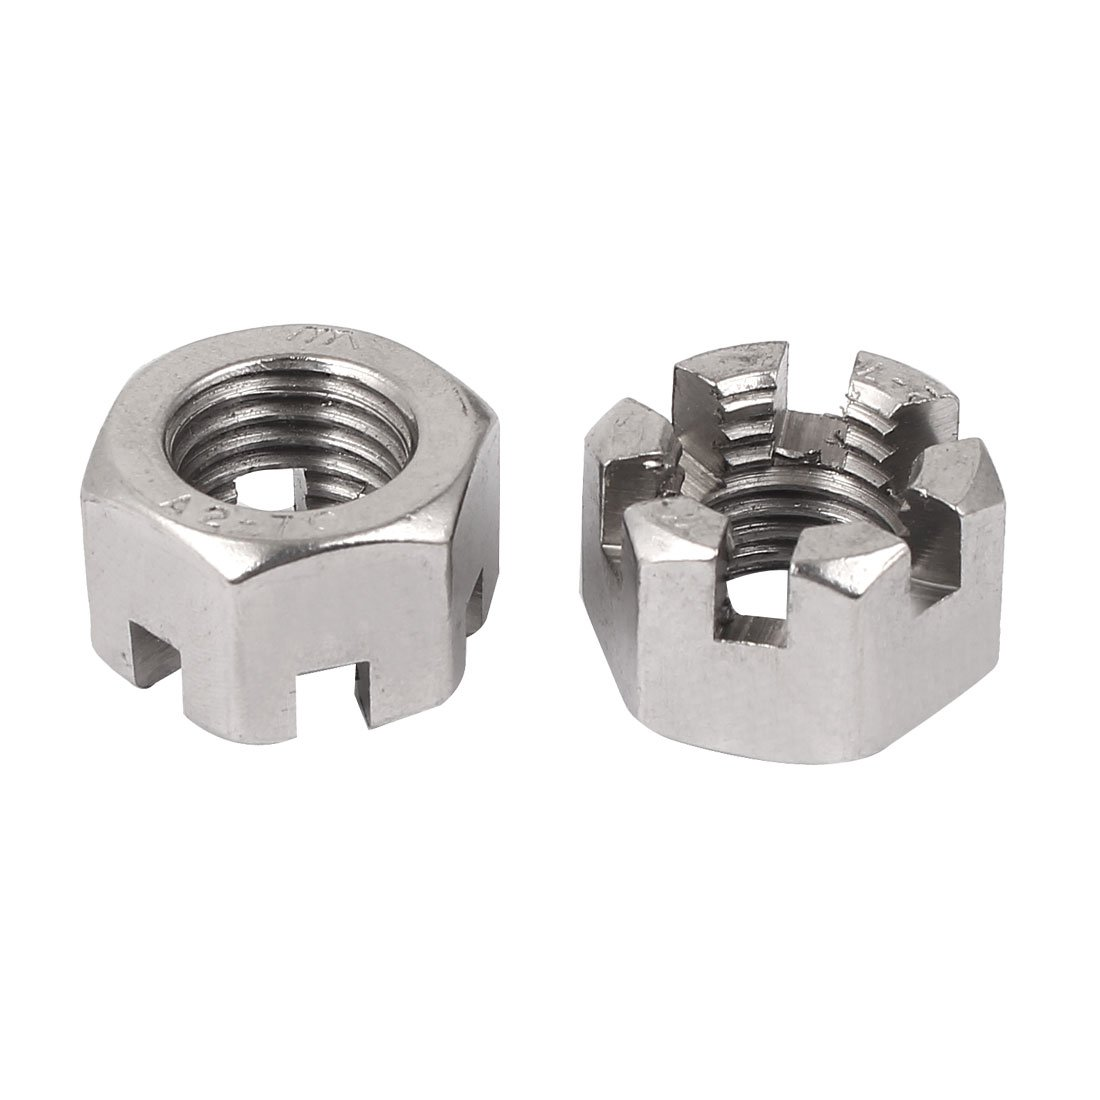 sourcing map M20 x 2.5mm Pitch 304 Stainless Steel Slotted Hex Nuts, Pack of 2